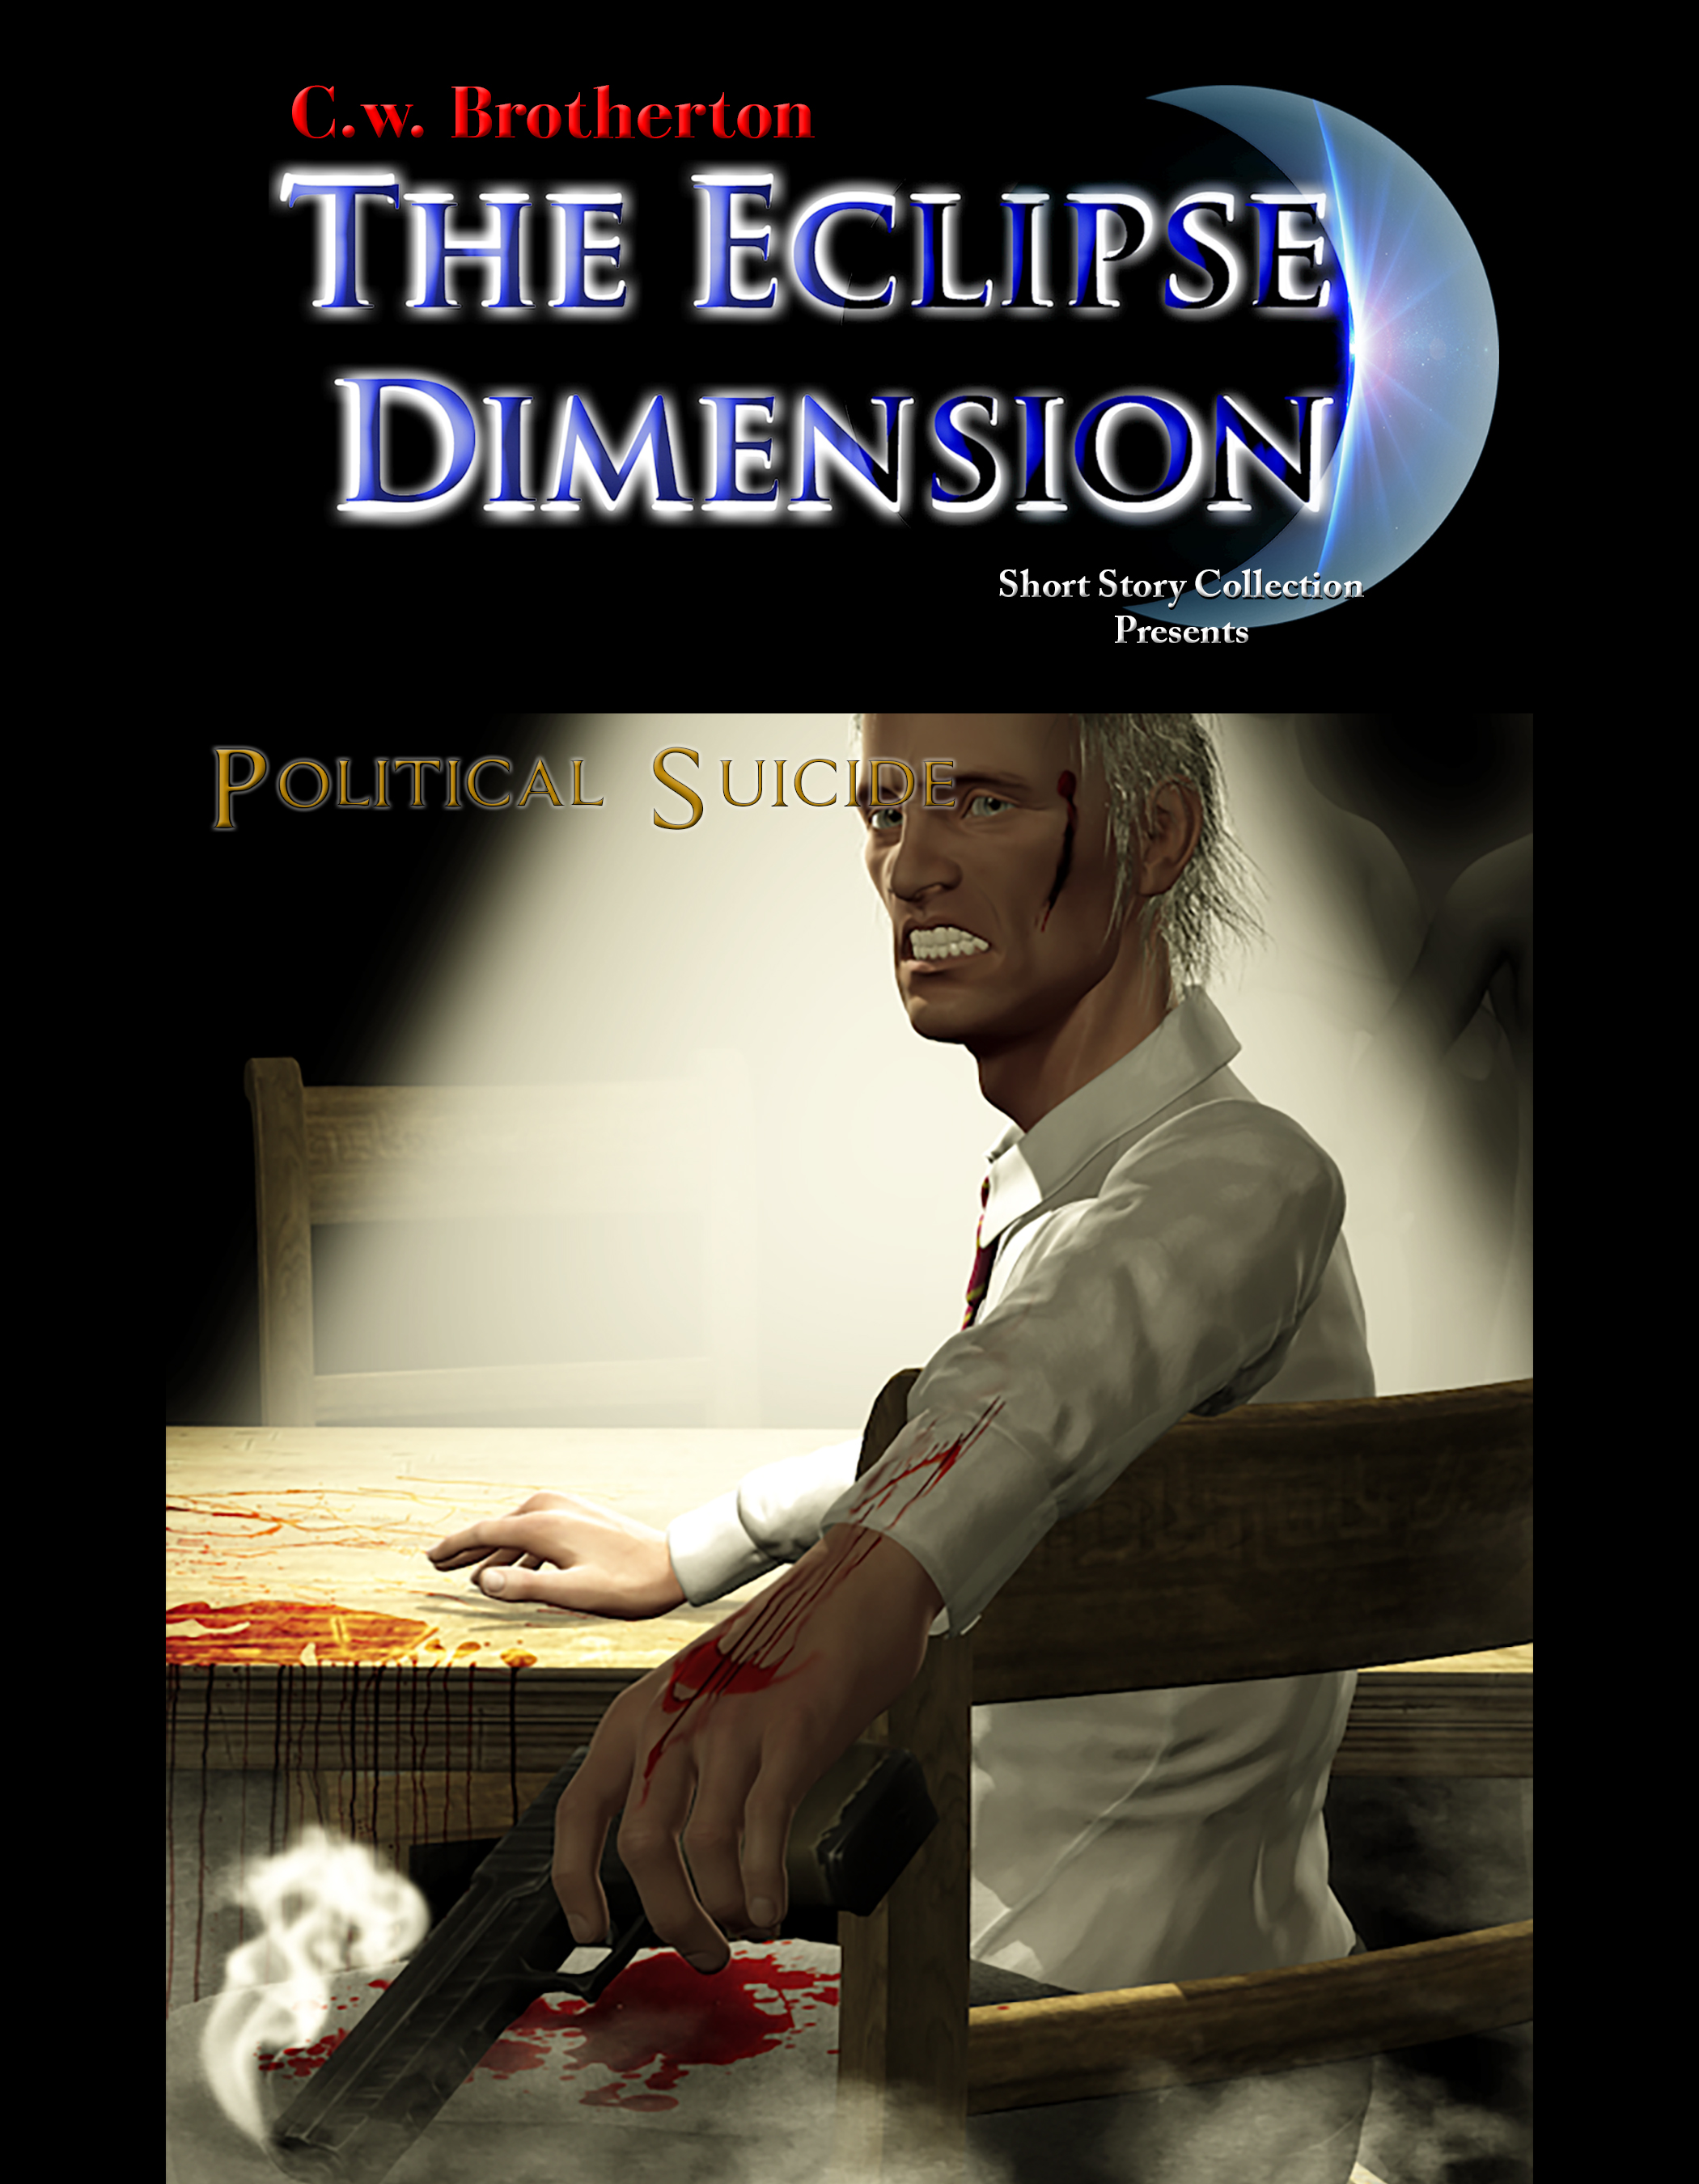 The Eclipse Dimension: Political Suicide